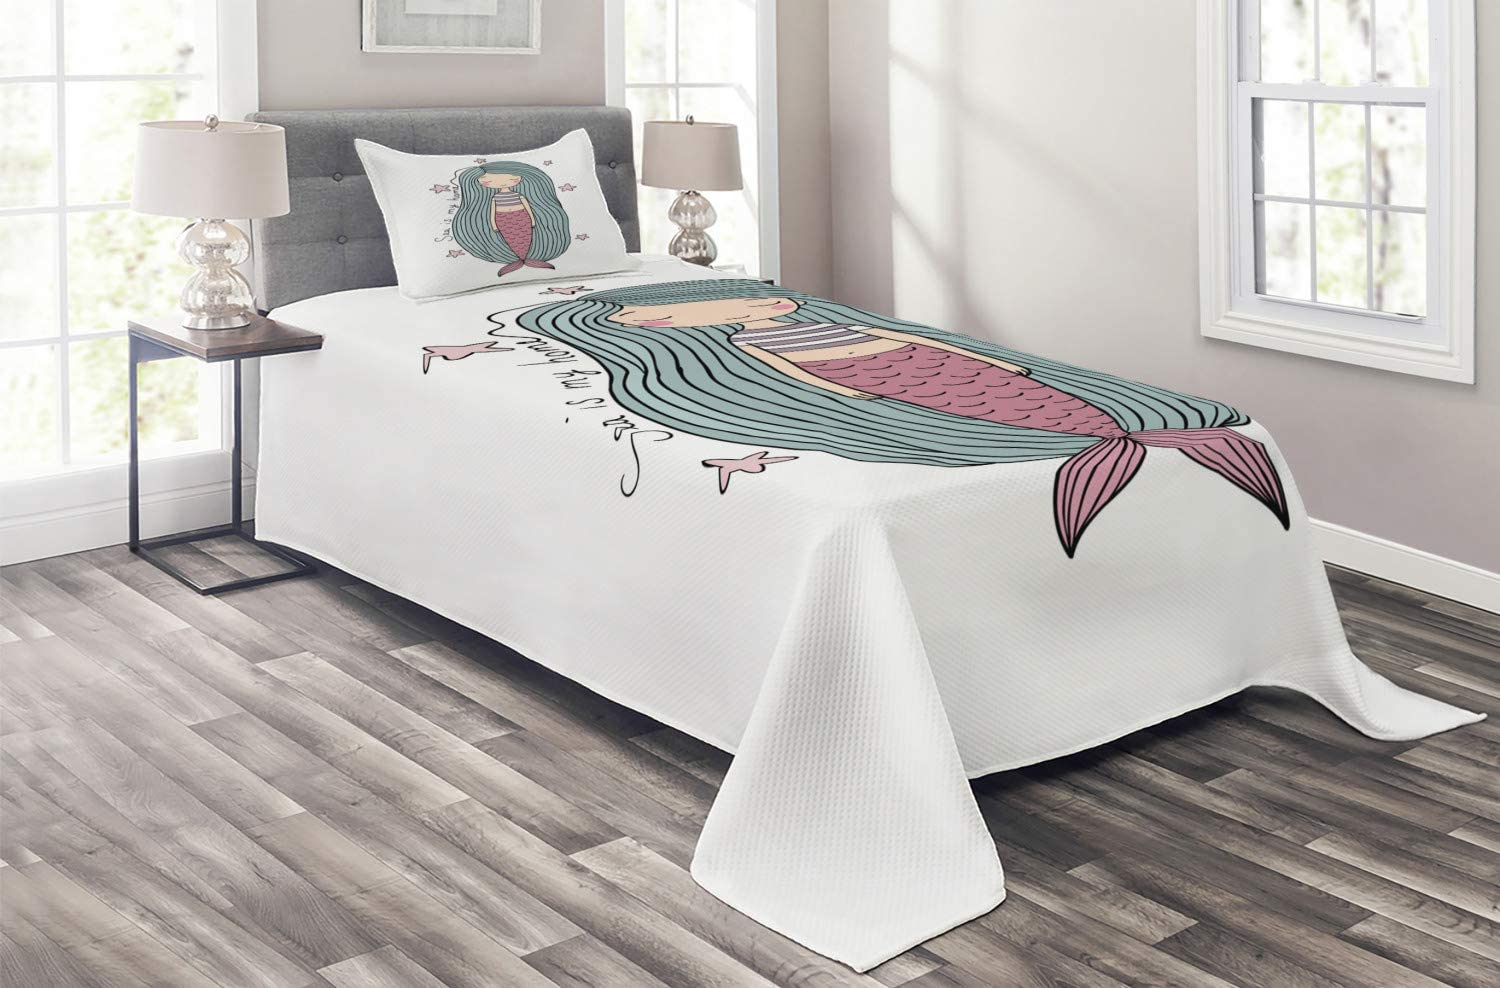 Ambesonne Mermaid Coverlet Sea is My Home Limited price Stra Ranking TOP1 Written Words in